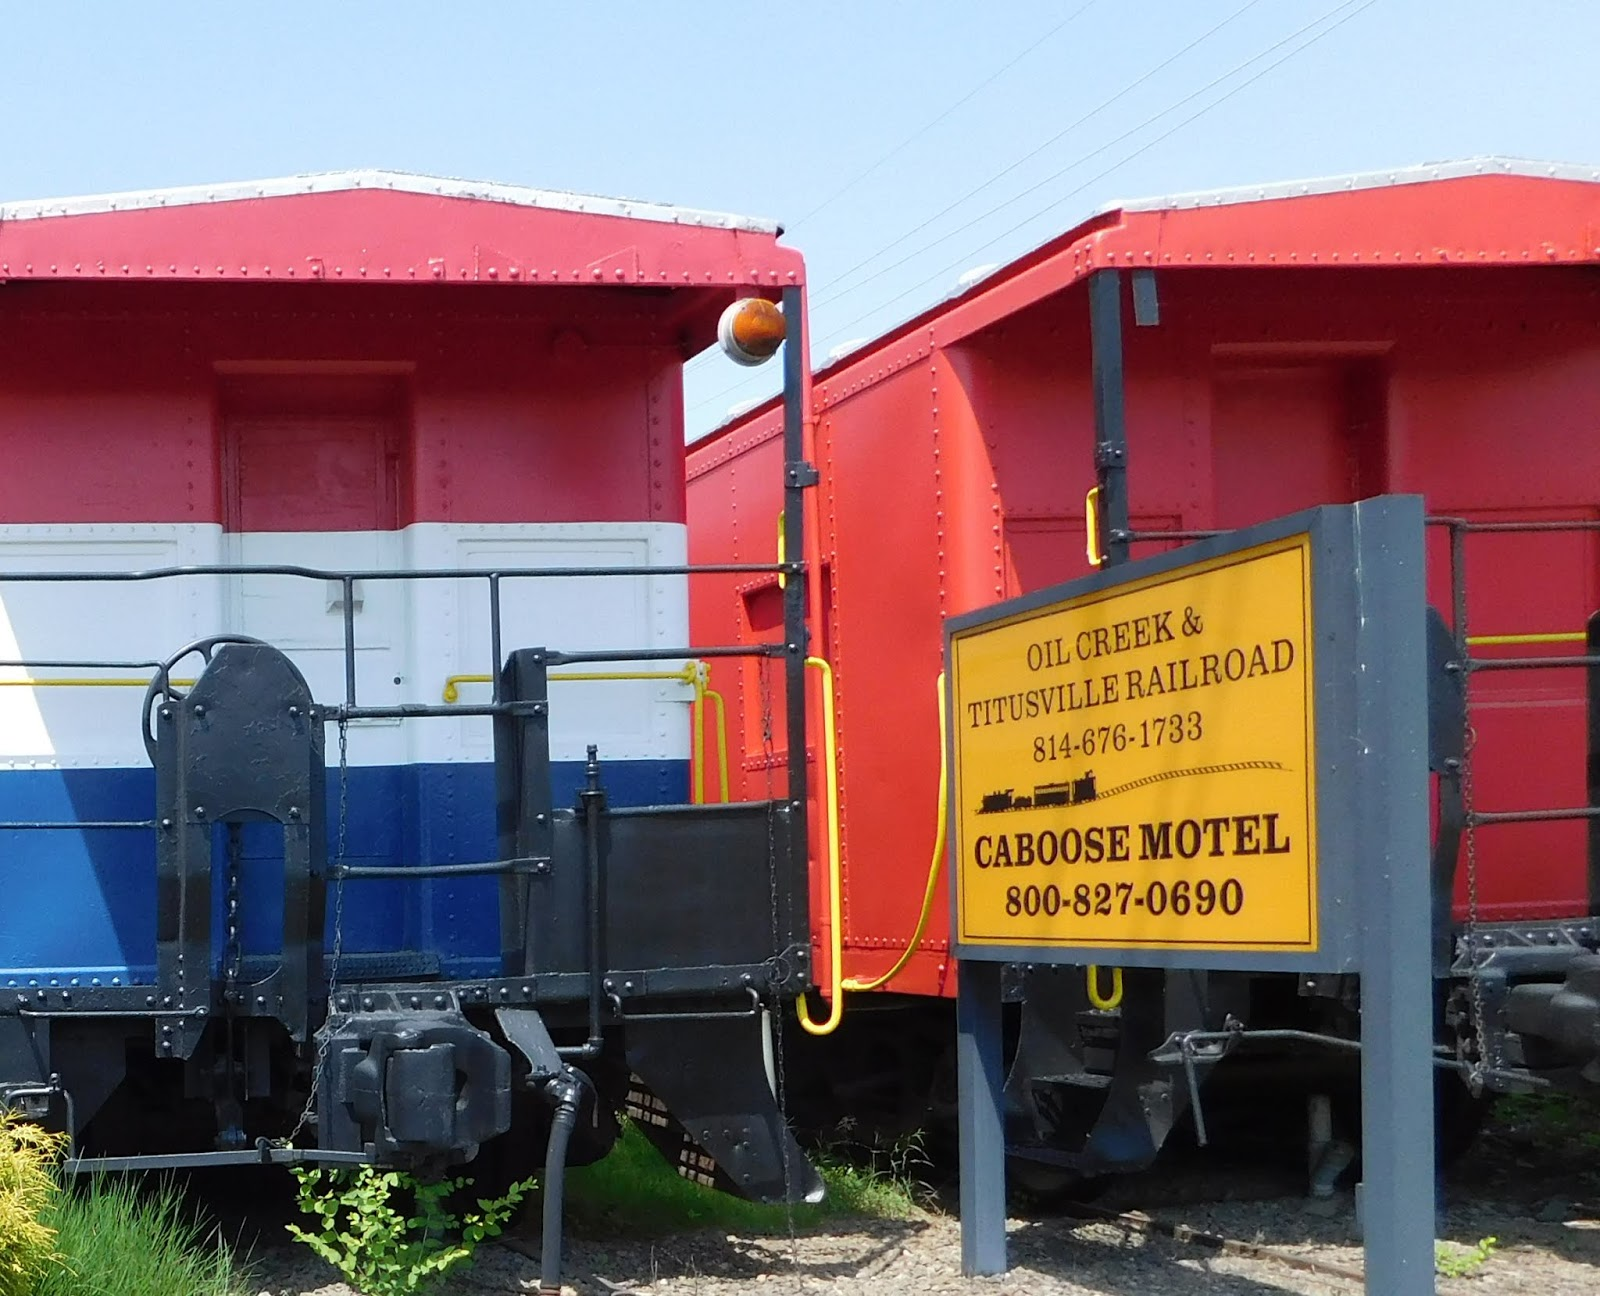 caboose motel in titusville pa with 21 actual cabooses fitted with plumbing furnishings and electricity